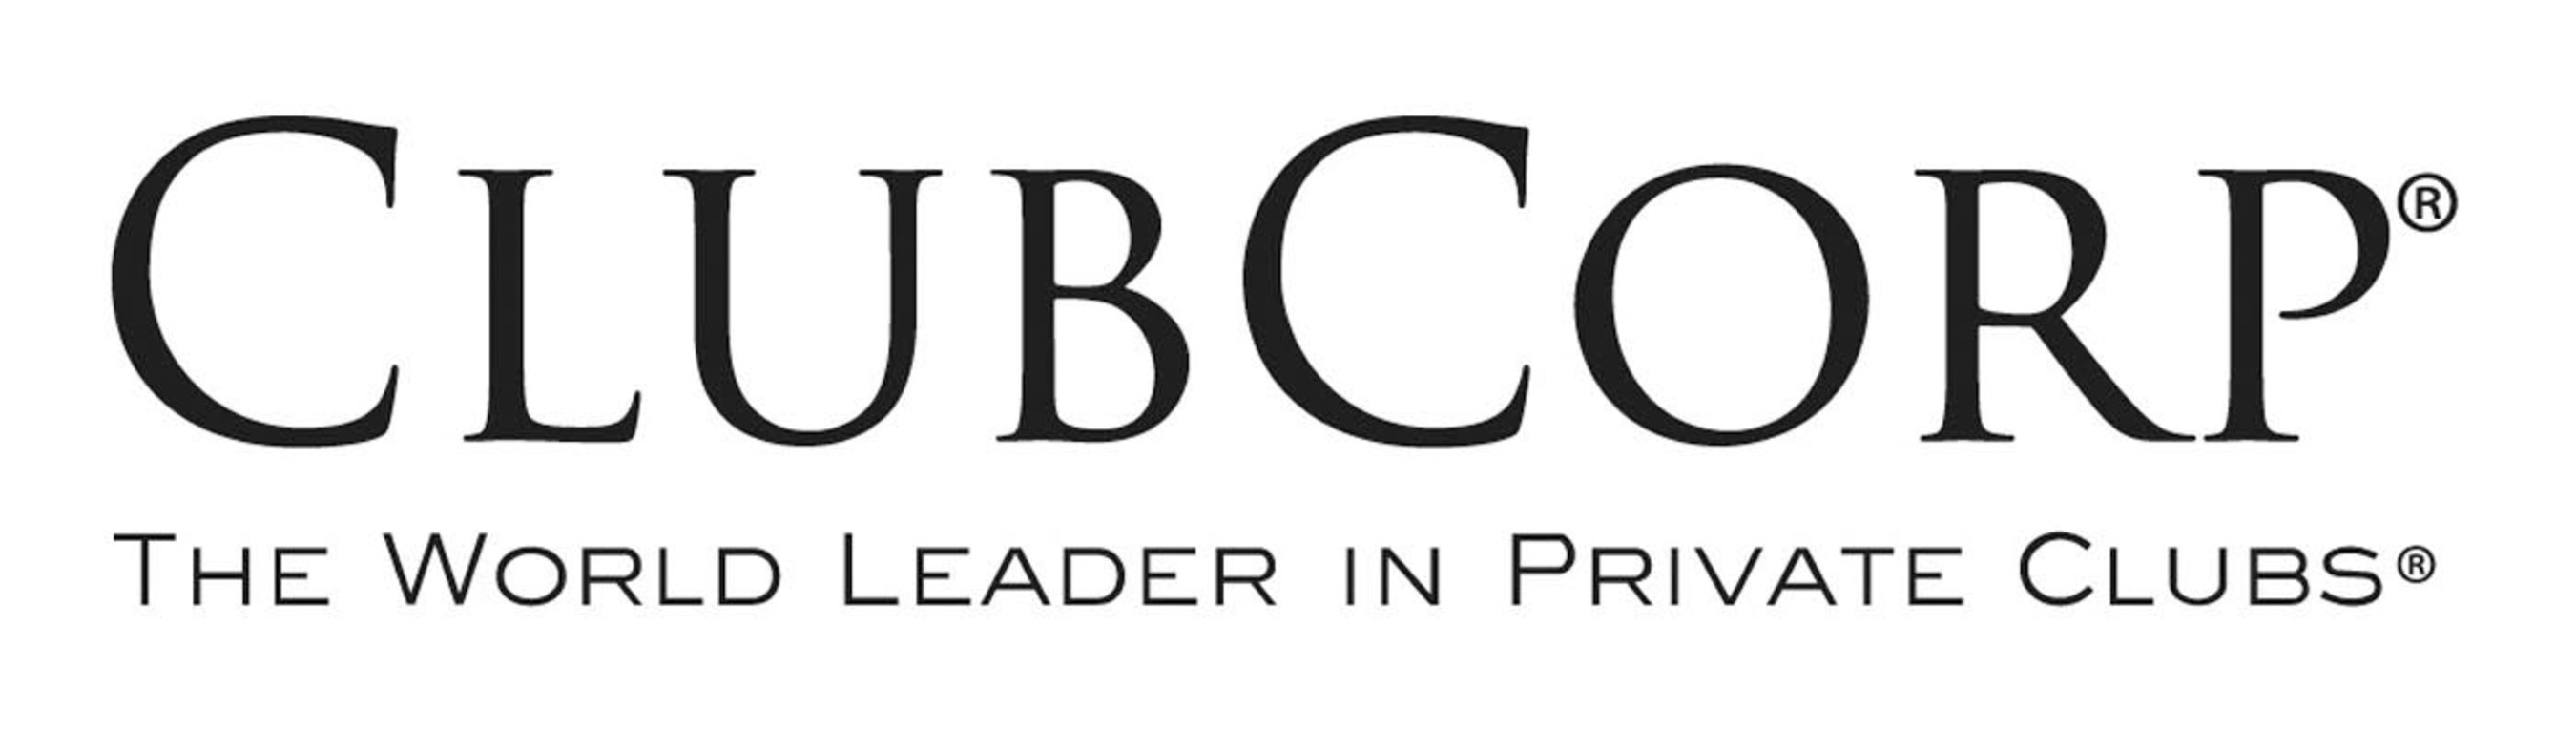 ClubCorp Holdings, Inc. Announces 2015 Second Quarter Earnings Release Date and Conference Call